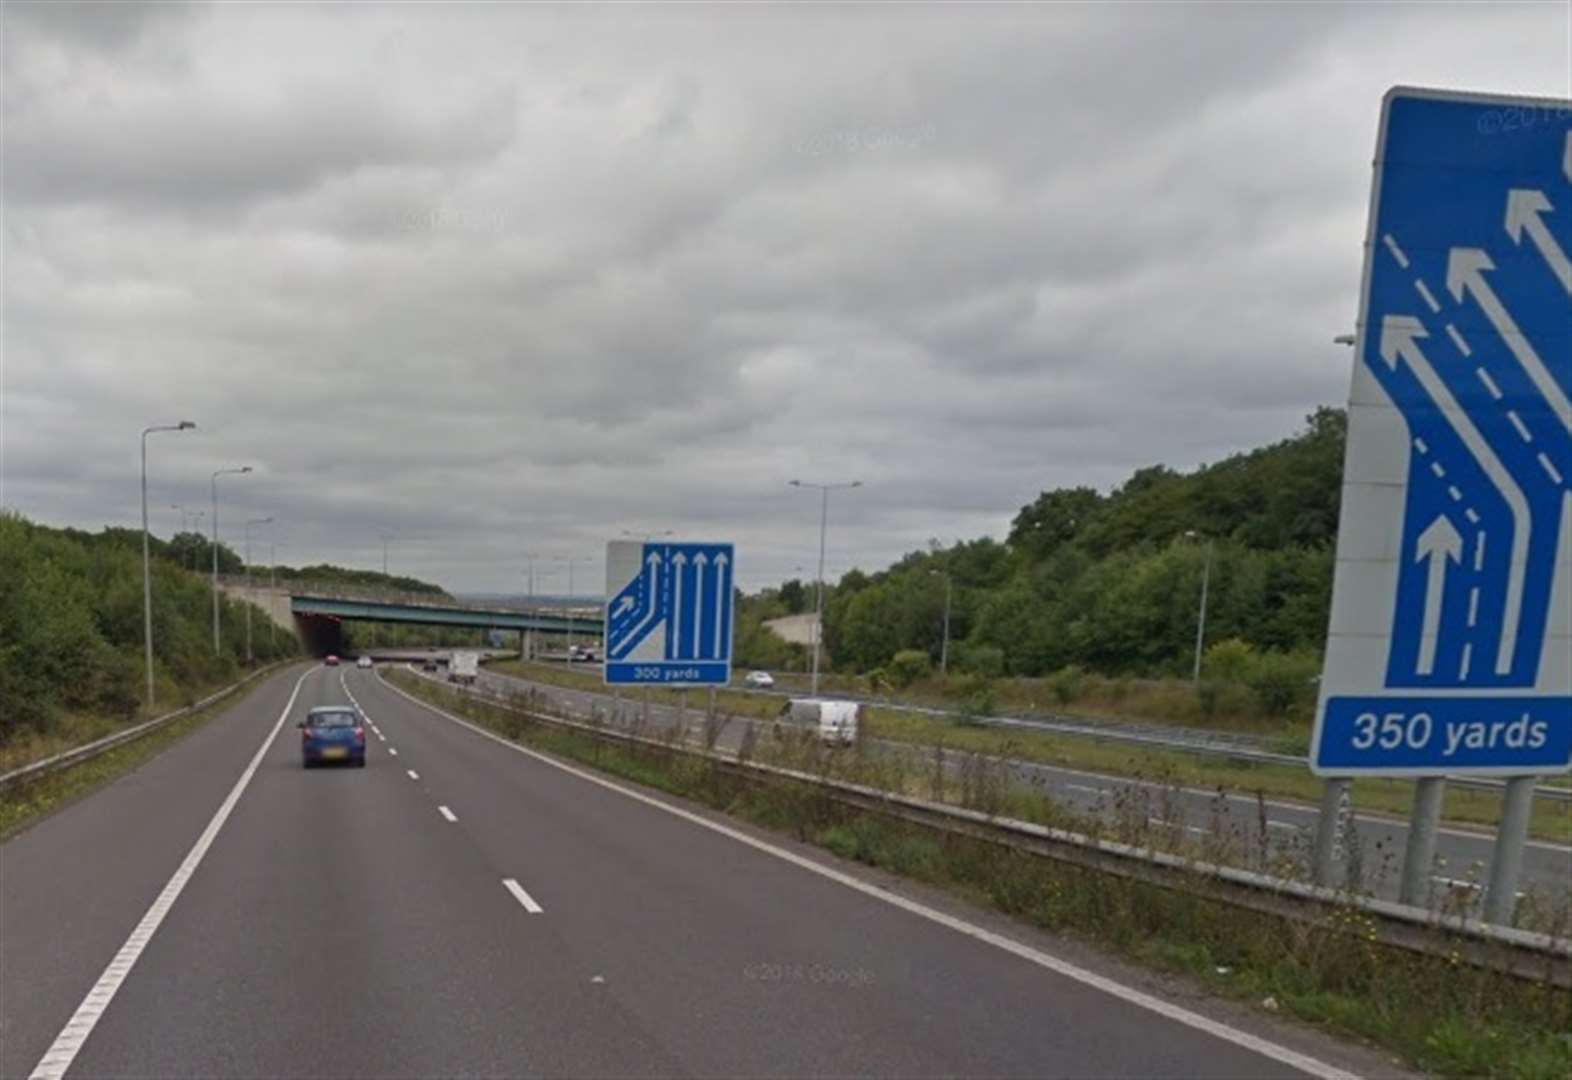 Services attend 1000-litre motorway fuel spill